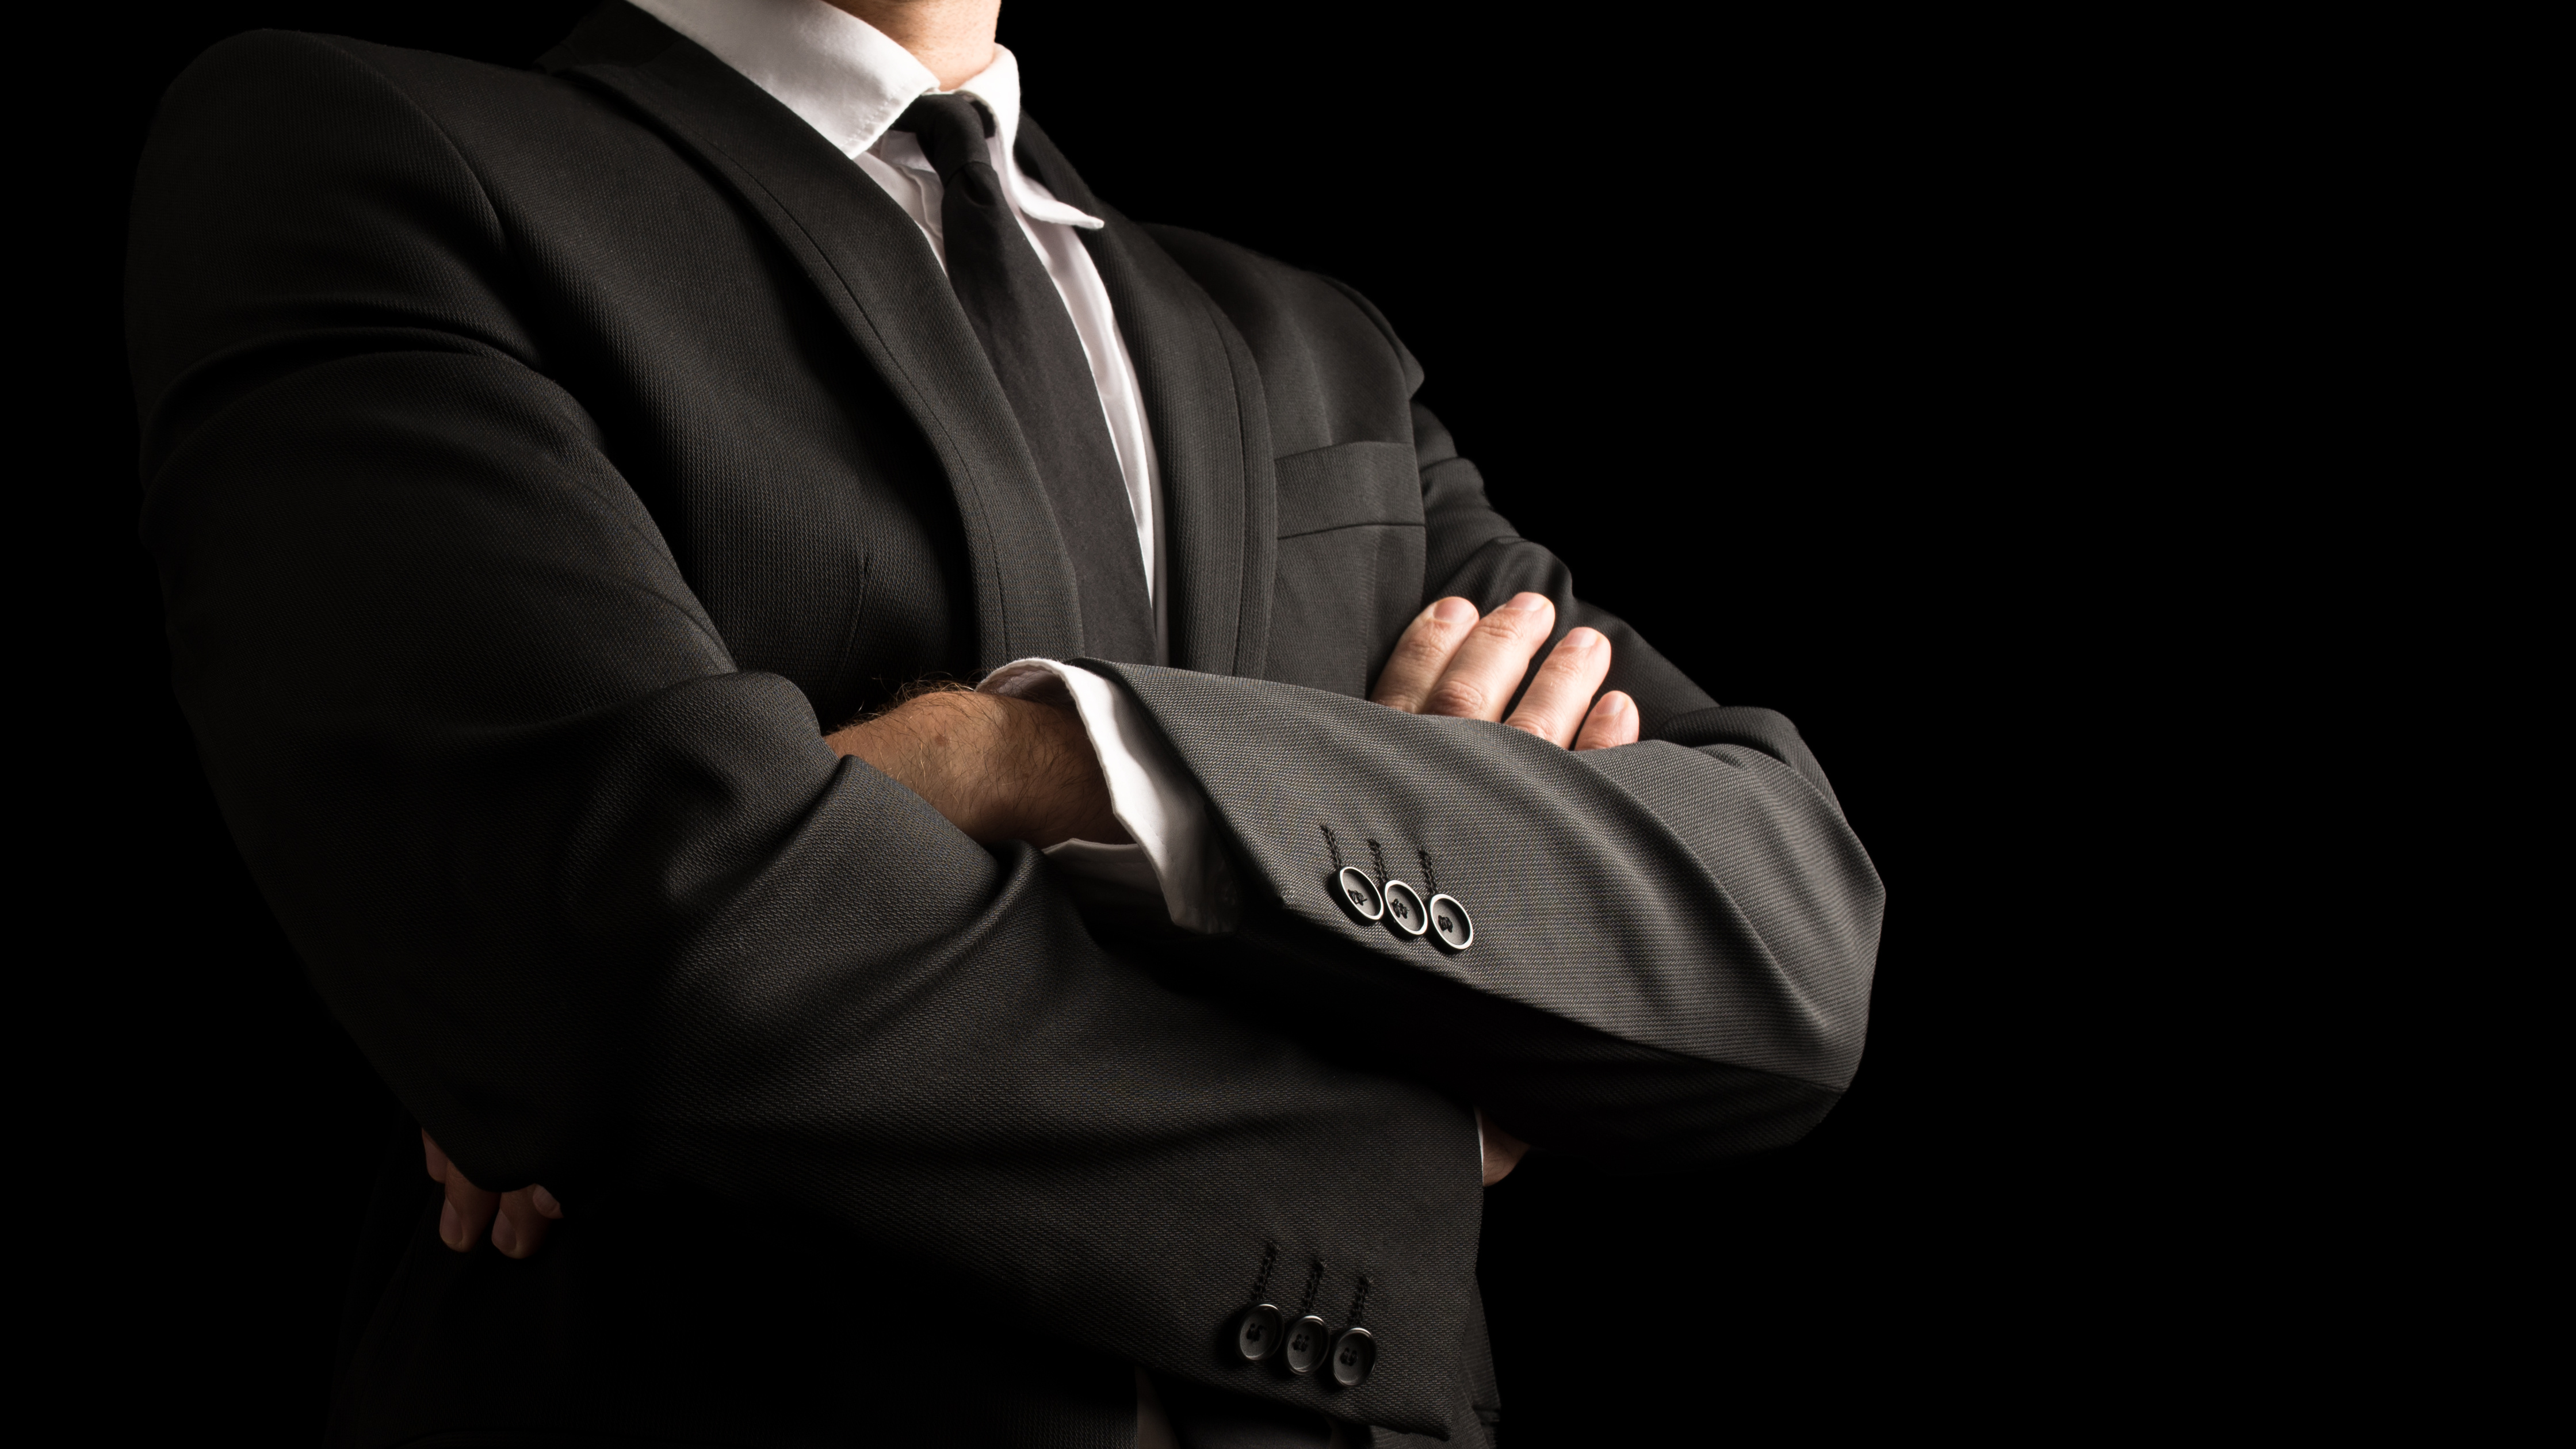 as a private investigator Martin investigative services (state license # pi 9077) is a licensed private investigation agency whether you choose us or another firm, always make sure your firm is licensed and legitimate whether you choose us or another firm, always make sure your firm is licensed and legitimate.